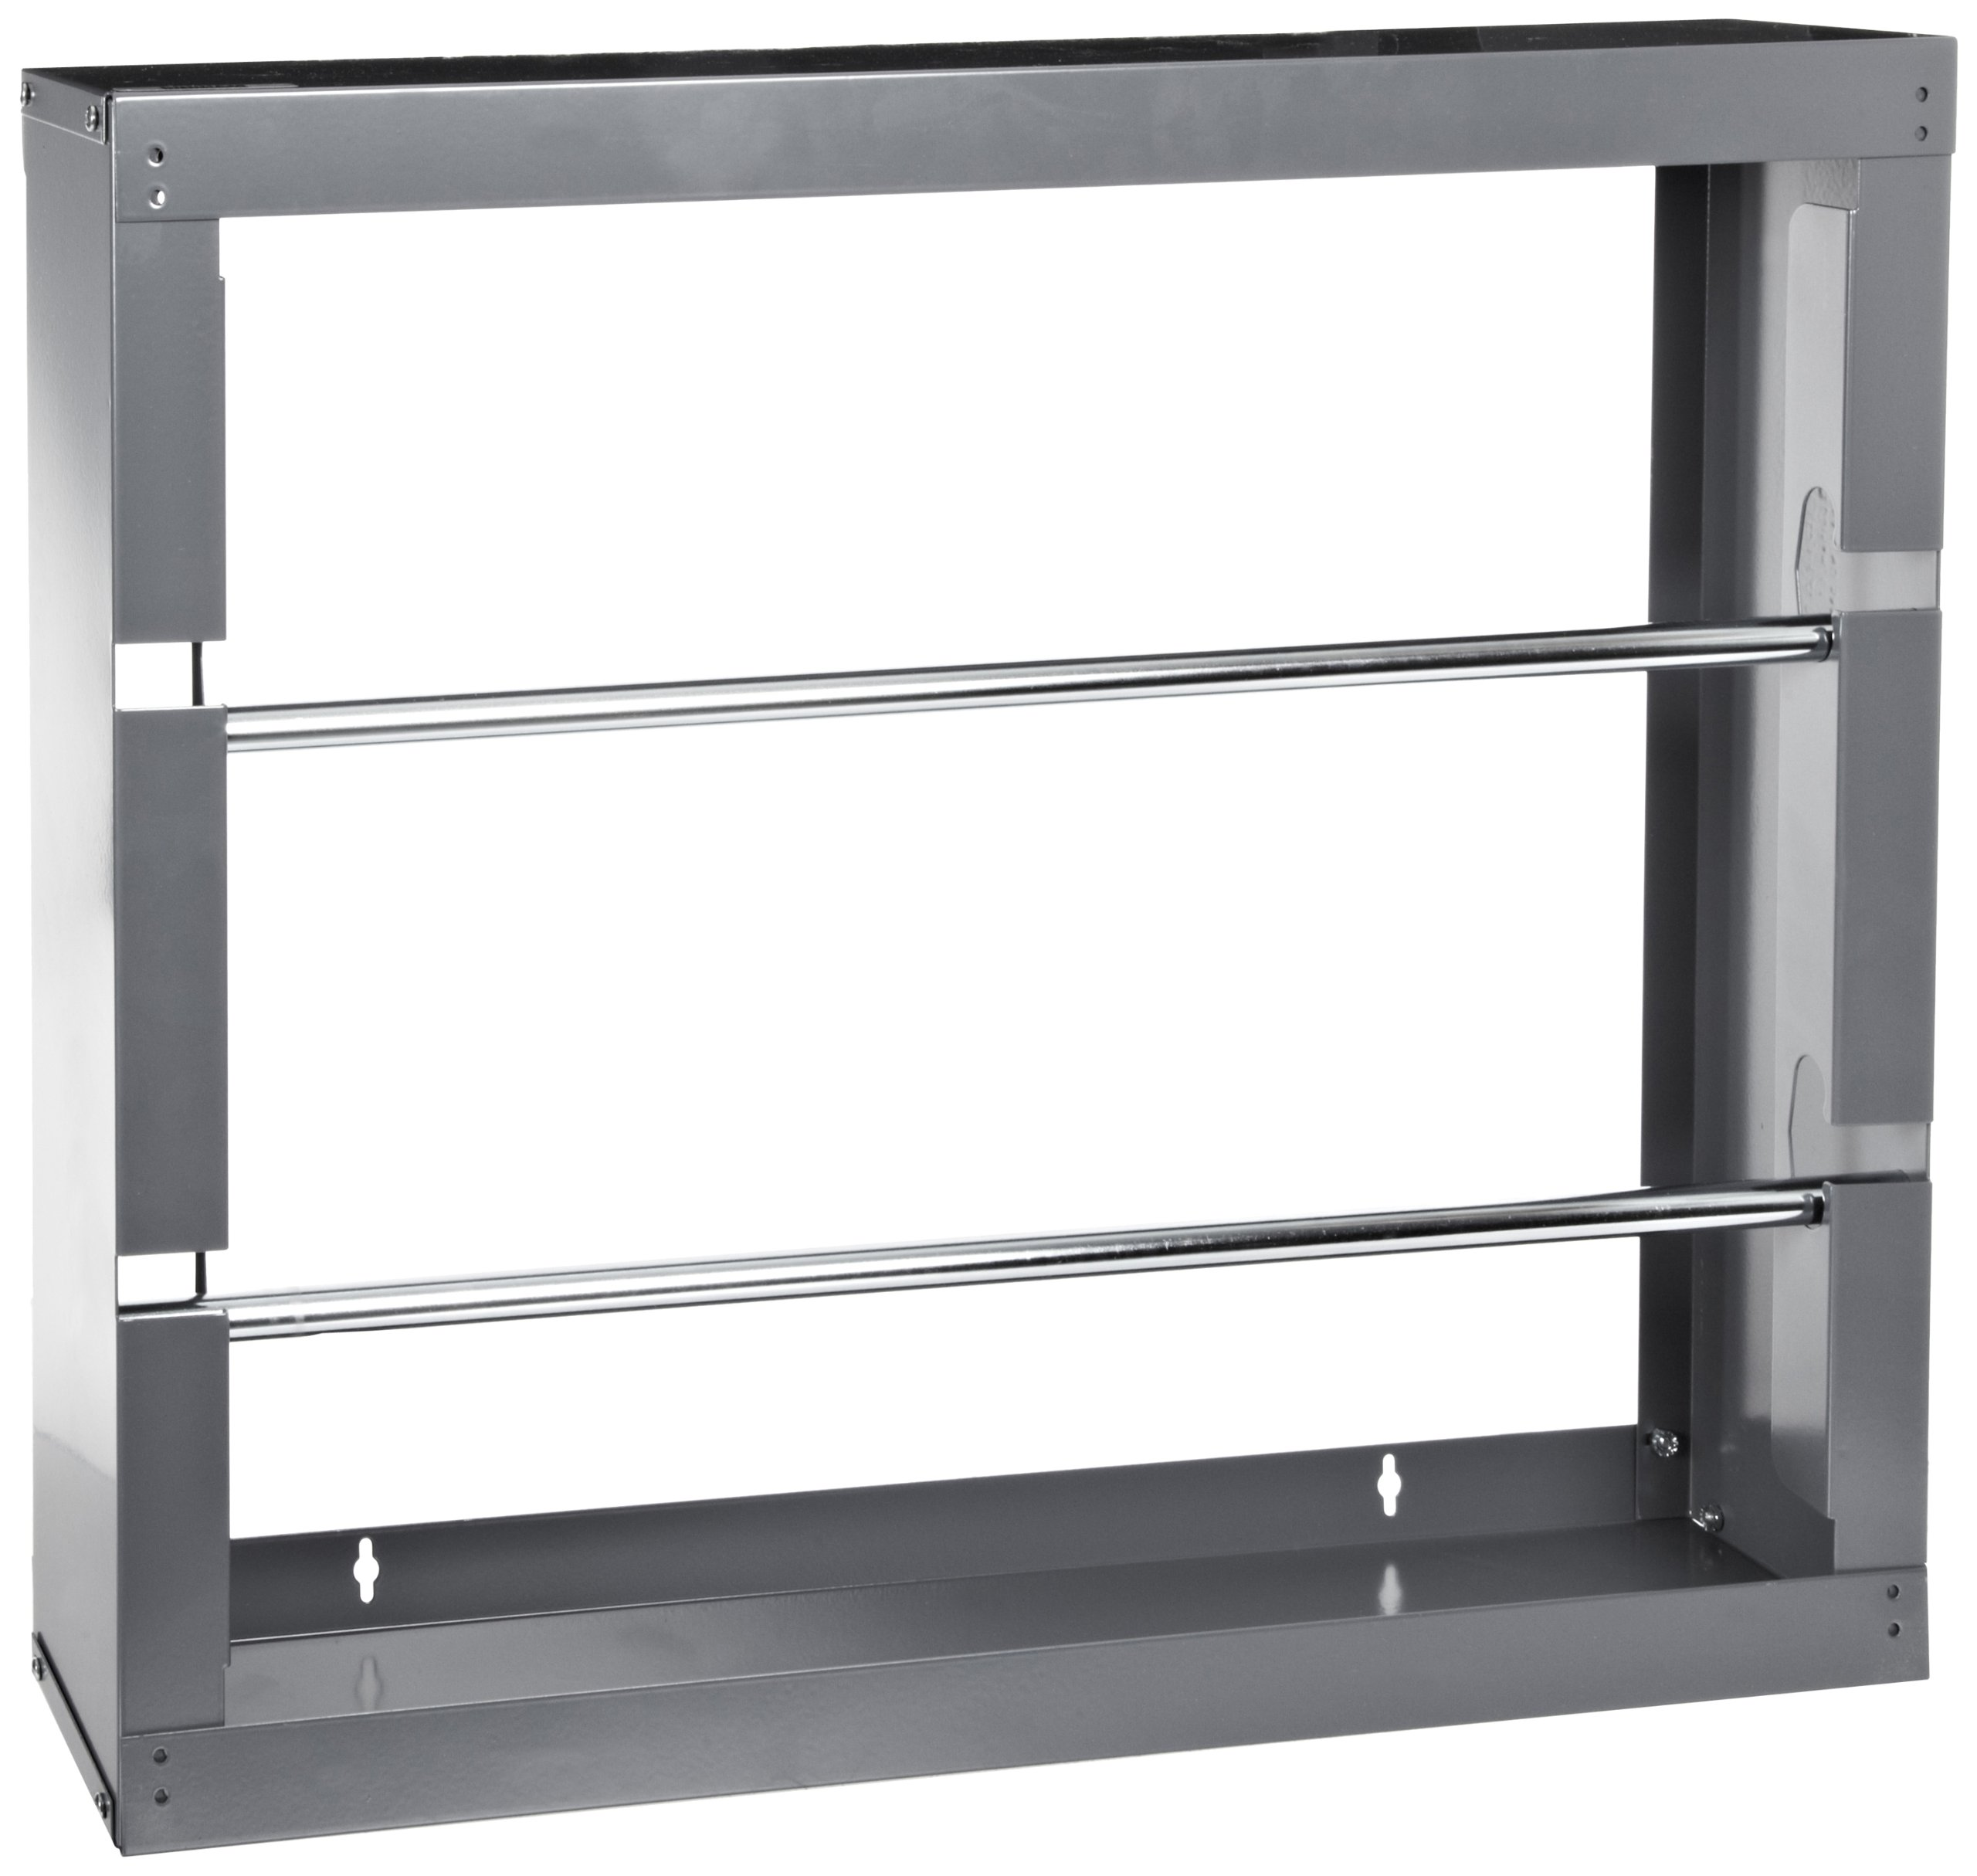 Durham 384-95 Gray Cold-Rolled Steel Wire Spool Rack with 2 Rods, 26-1/8'' Width x 17-7/8'' Height x 6'' Depth by Durham